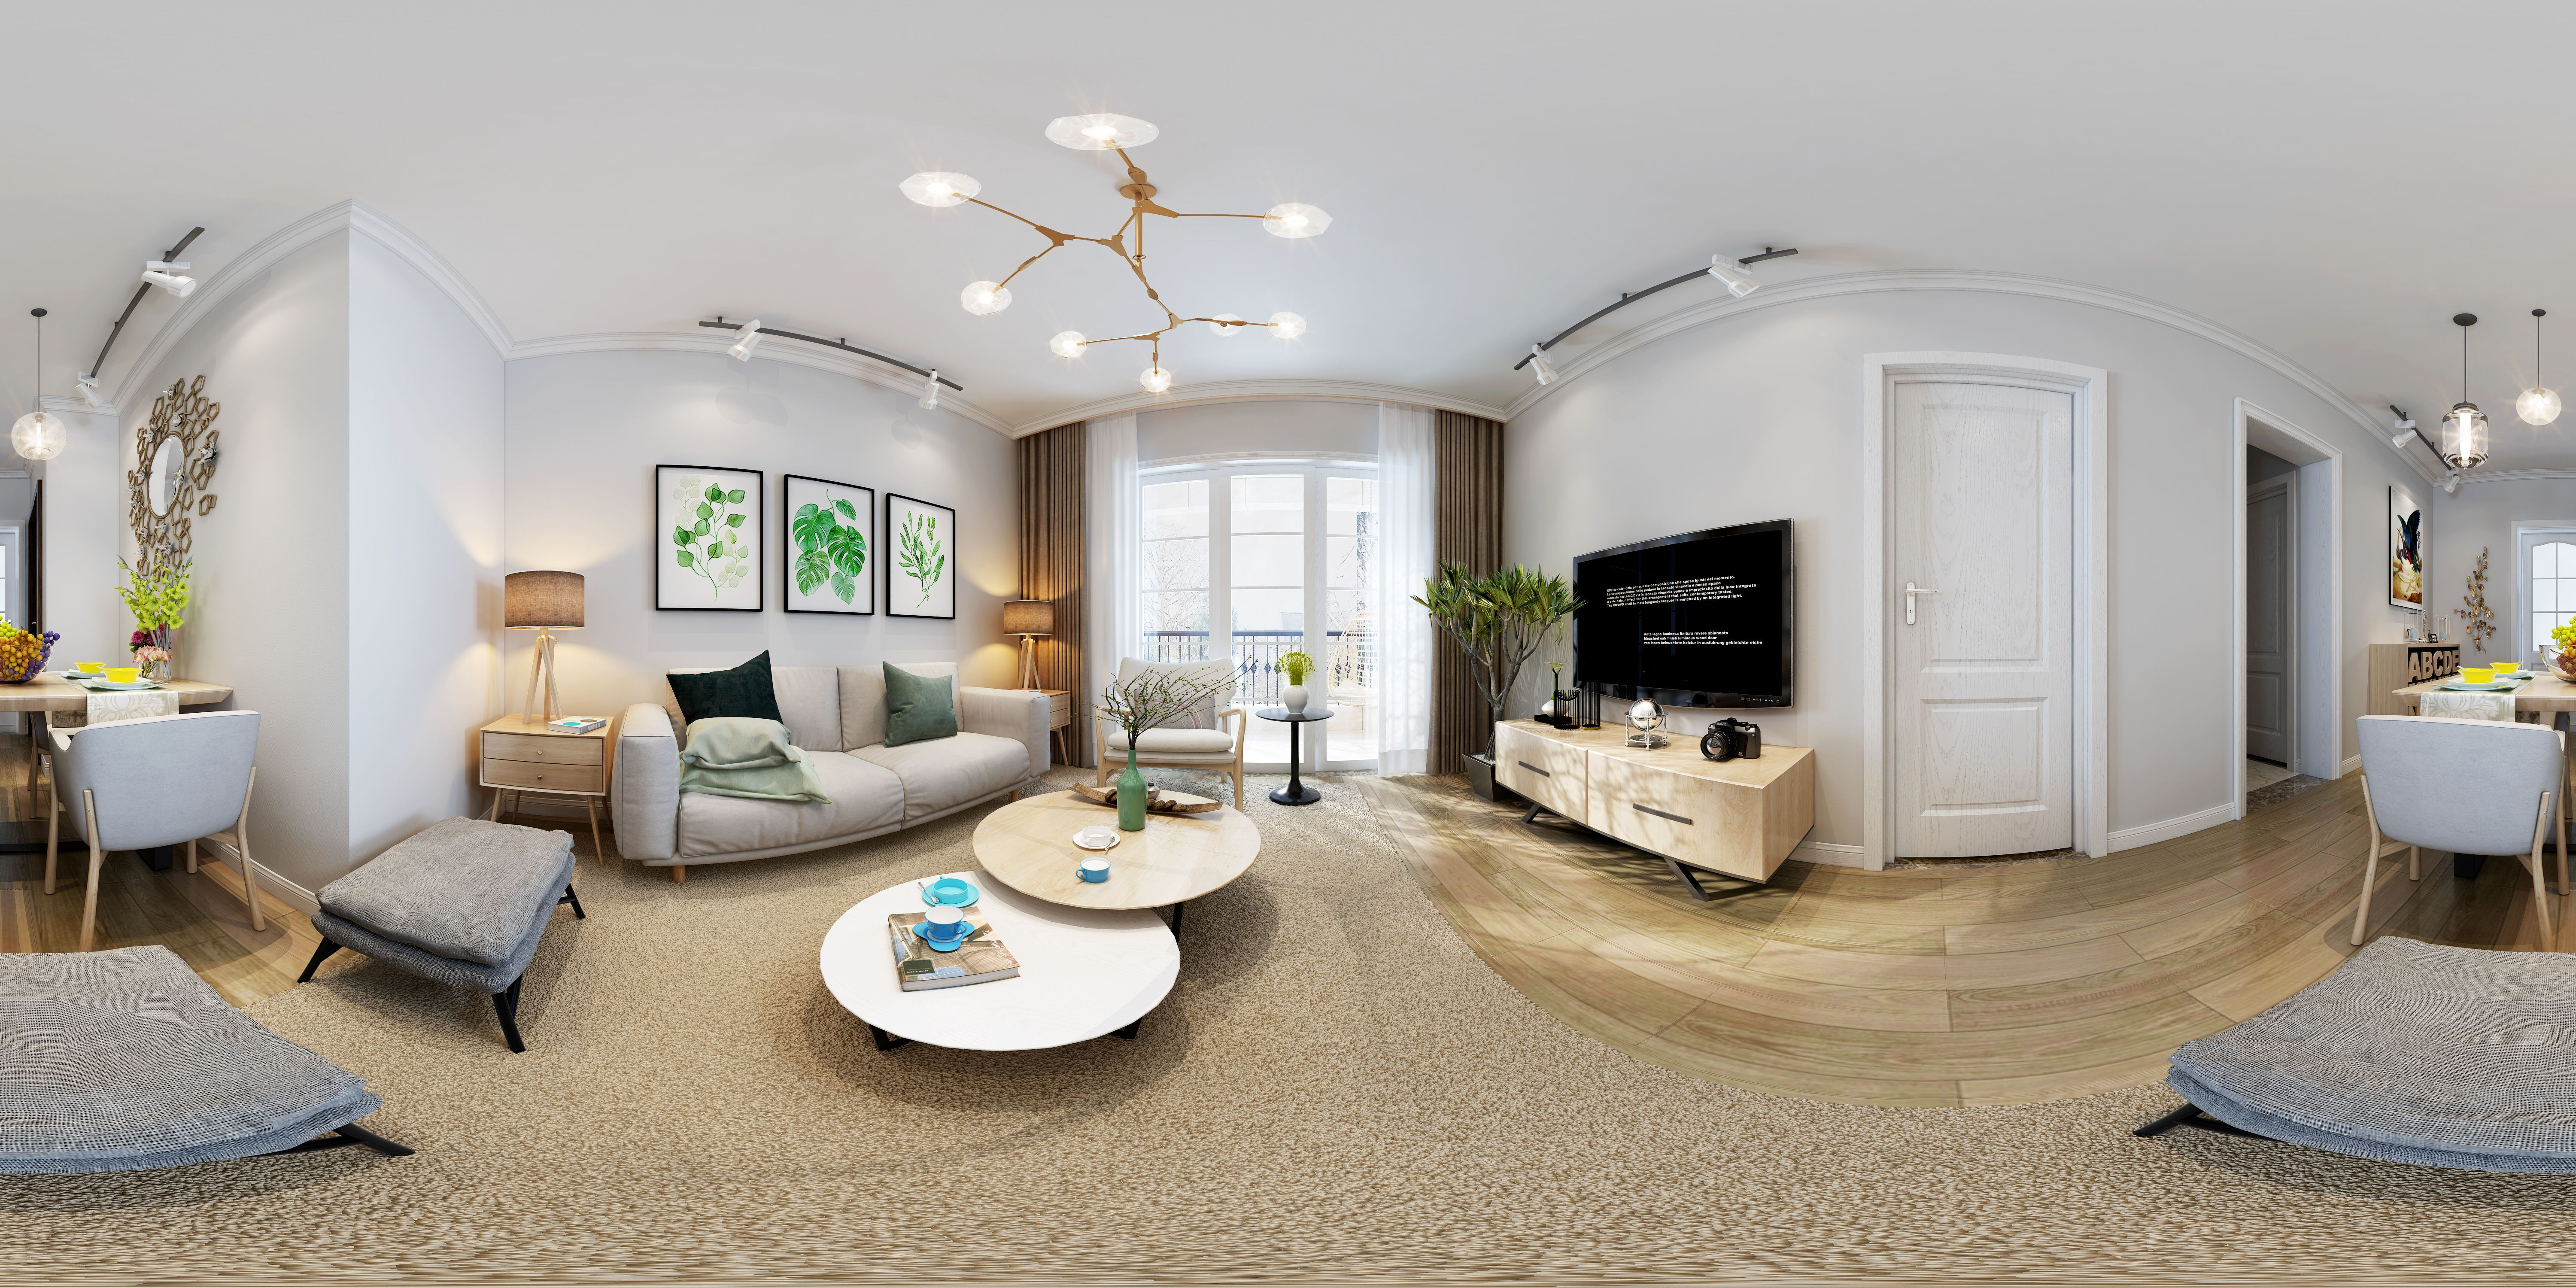 Google Street View Trusted Photographer Professional Virtual Tour Entrancing Virtual Living Room Designer Free Review